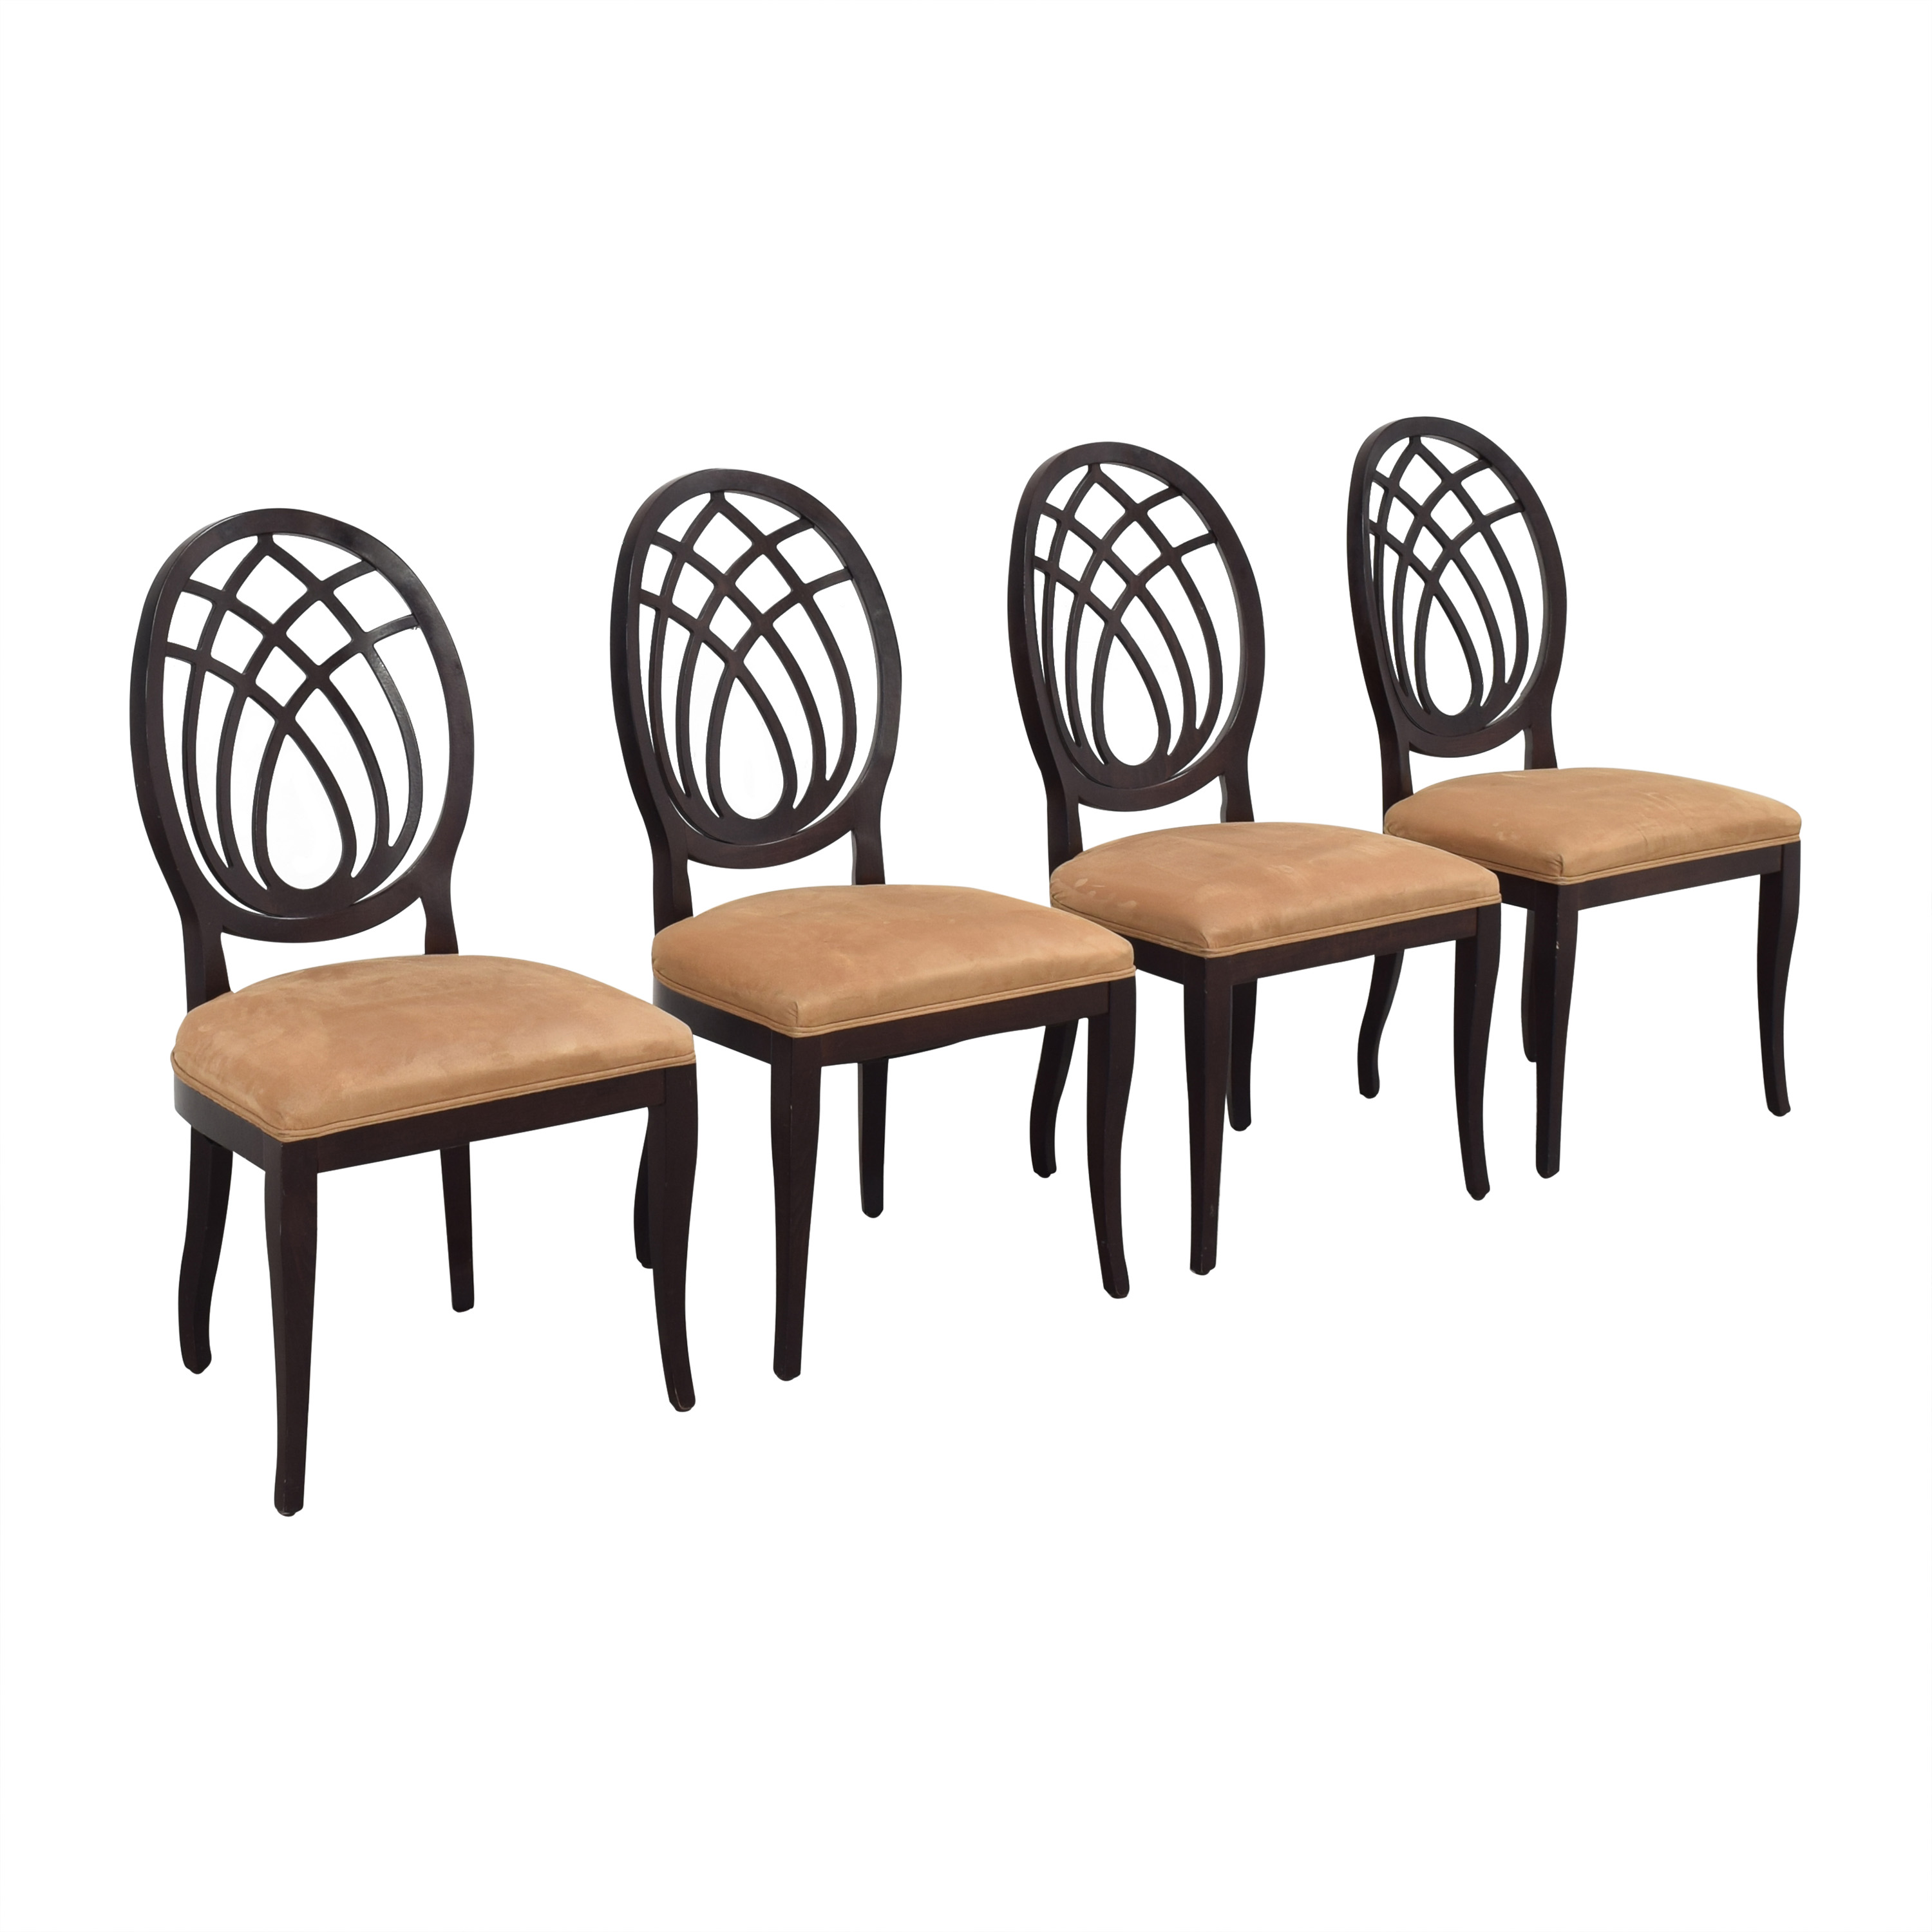 Bombay Company Bombay Company Oval Back Dining Side Chairs discount